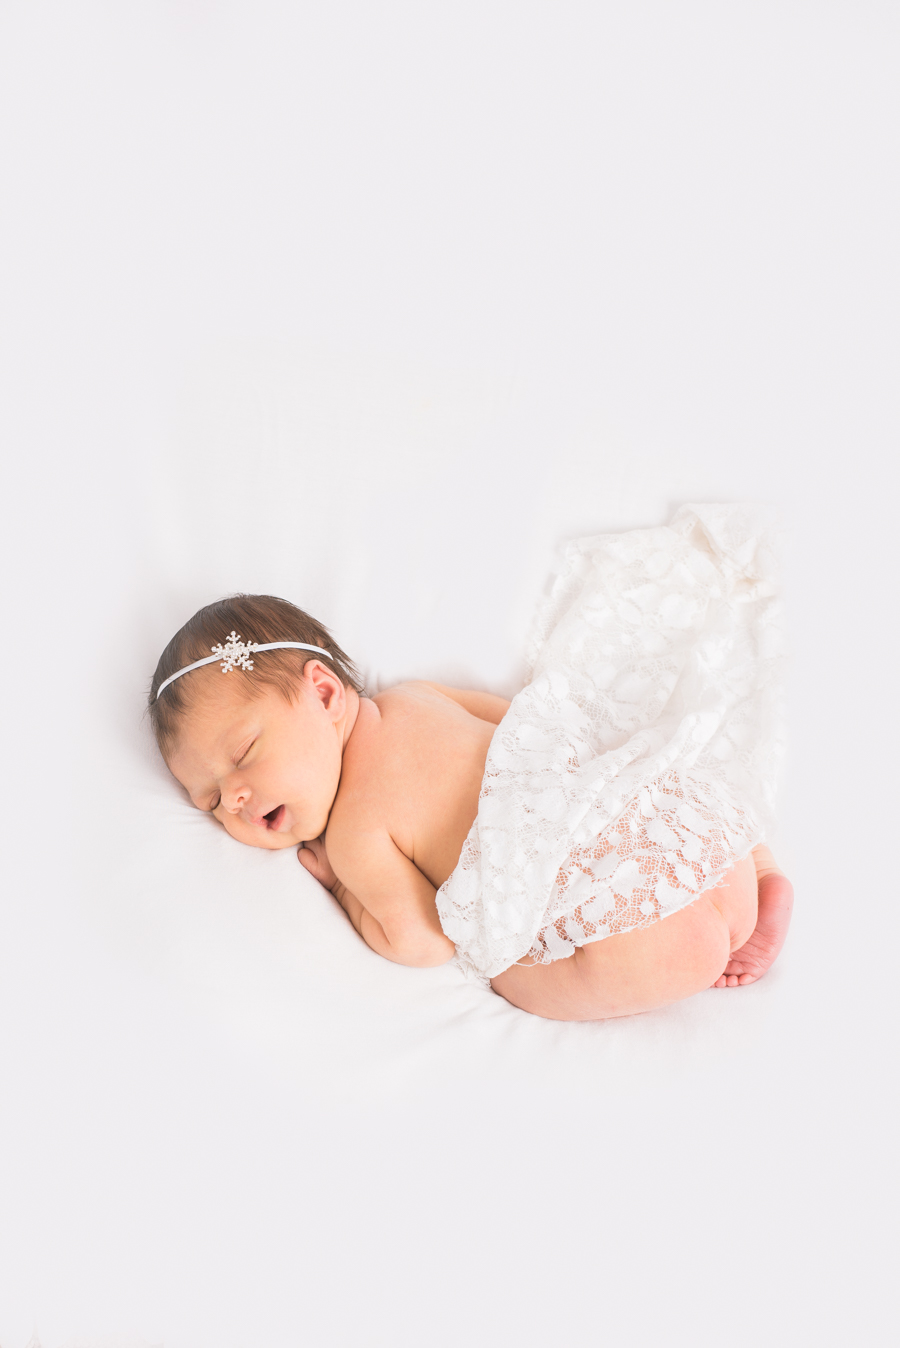 orlando lifestyle newborn photos-15.jpg